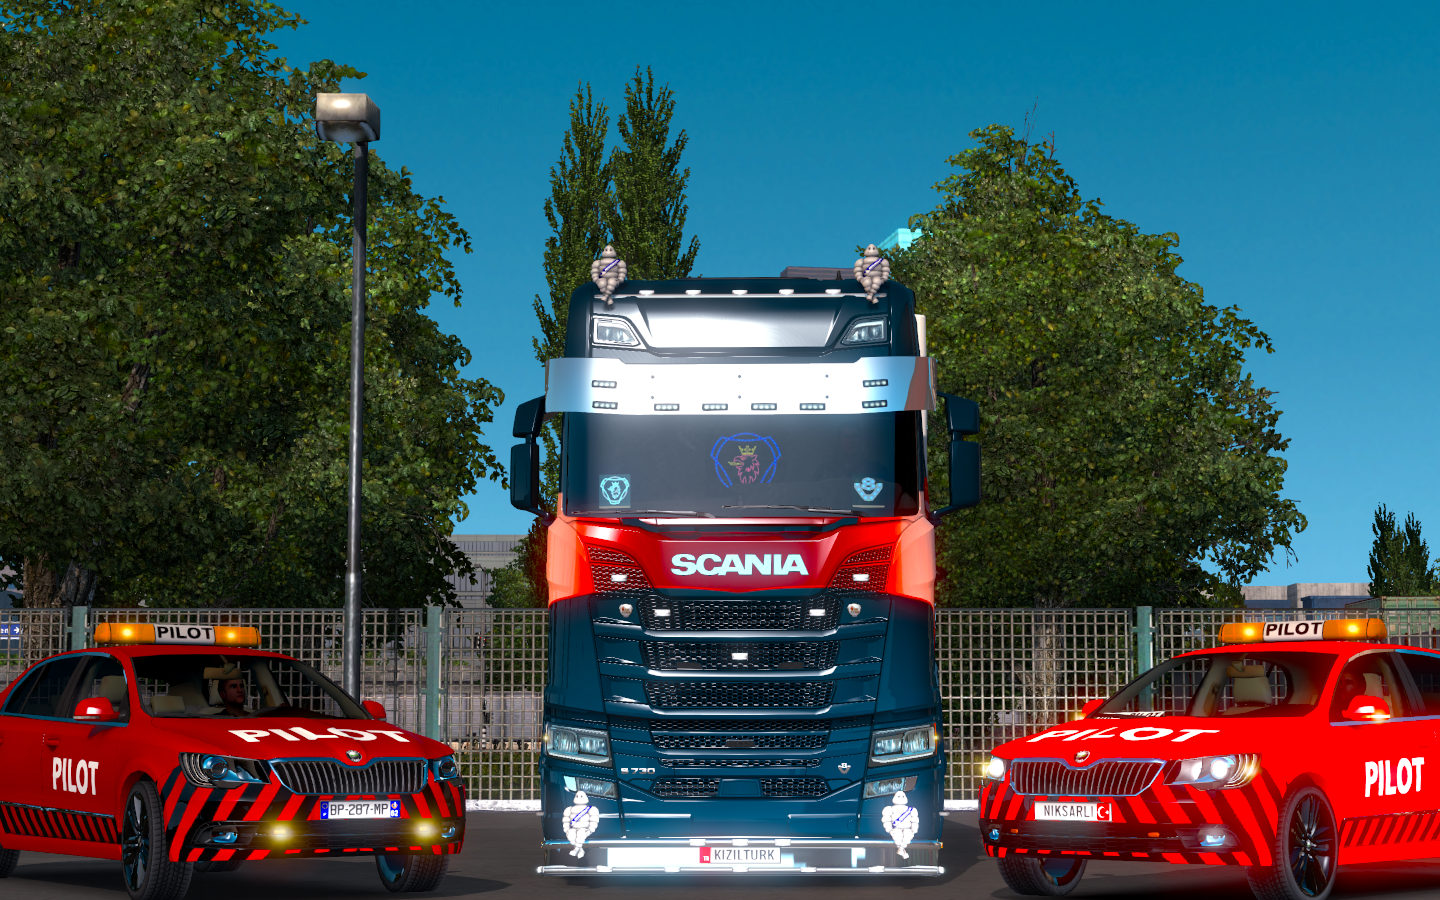 ets2_20190423_193234_00.png